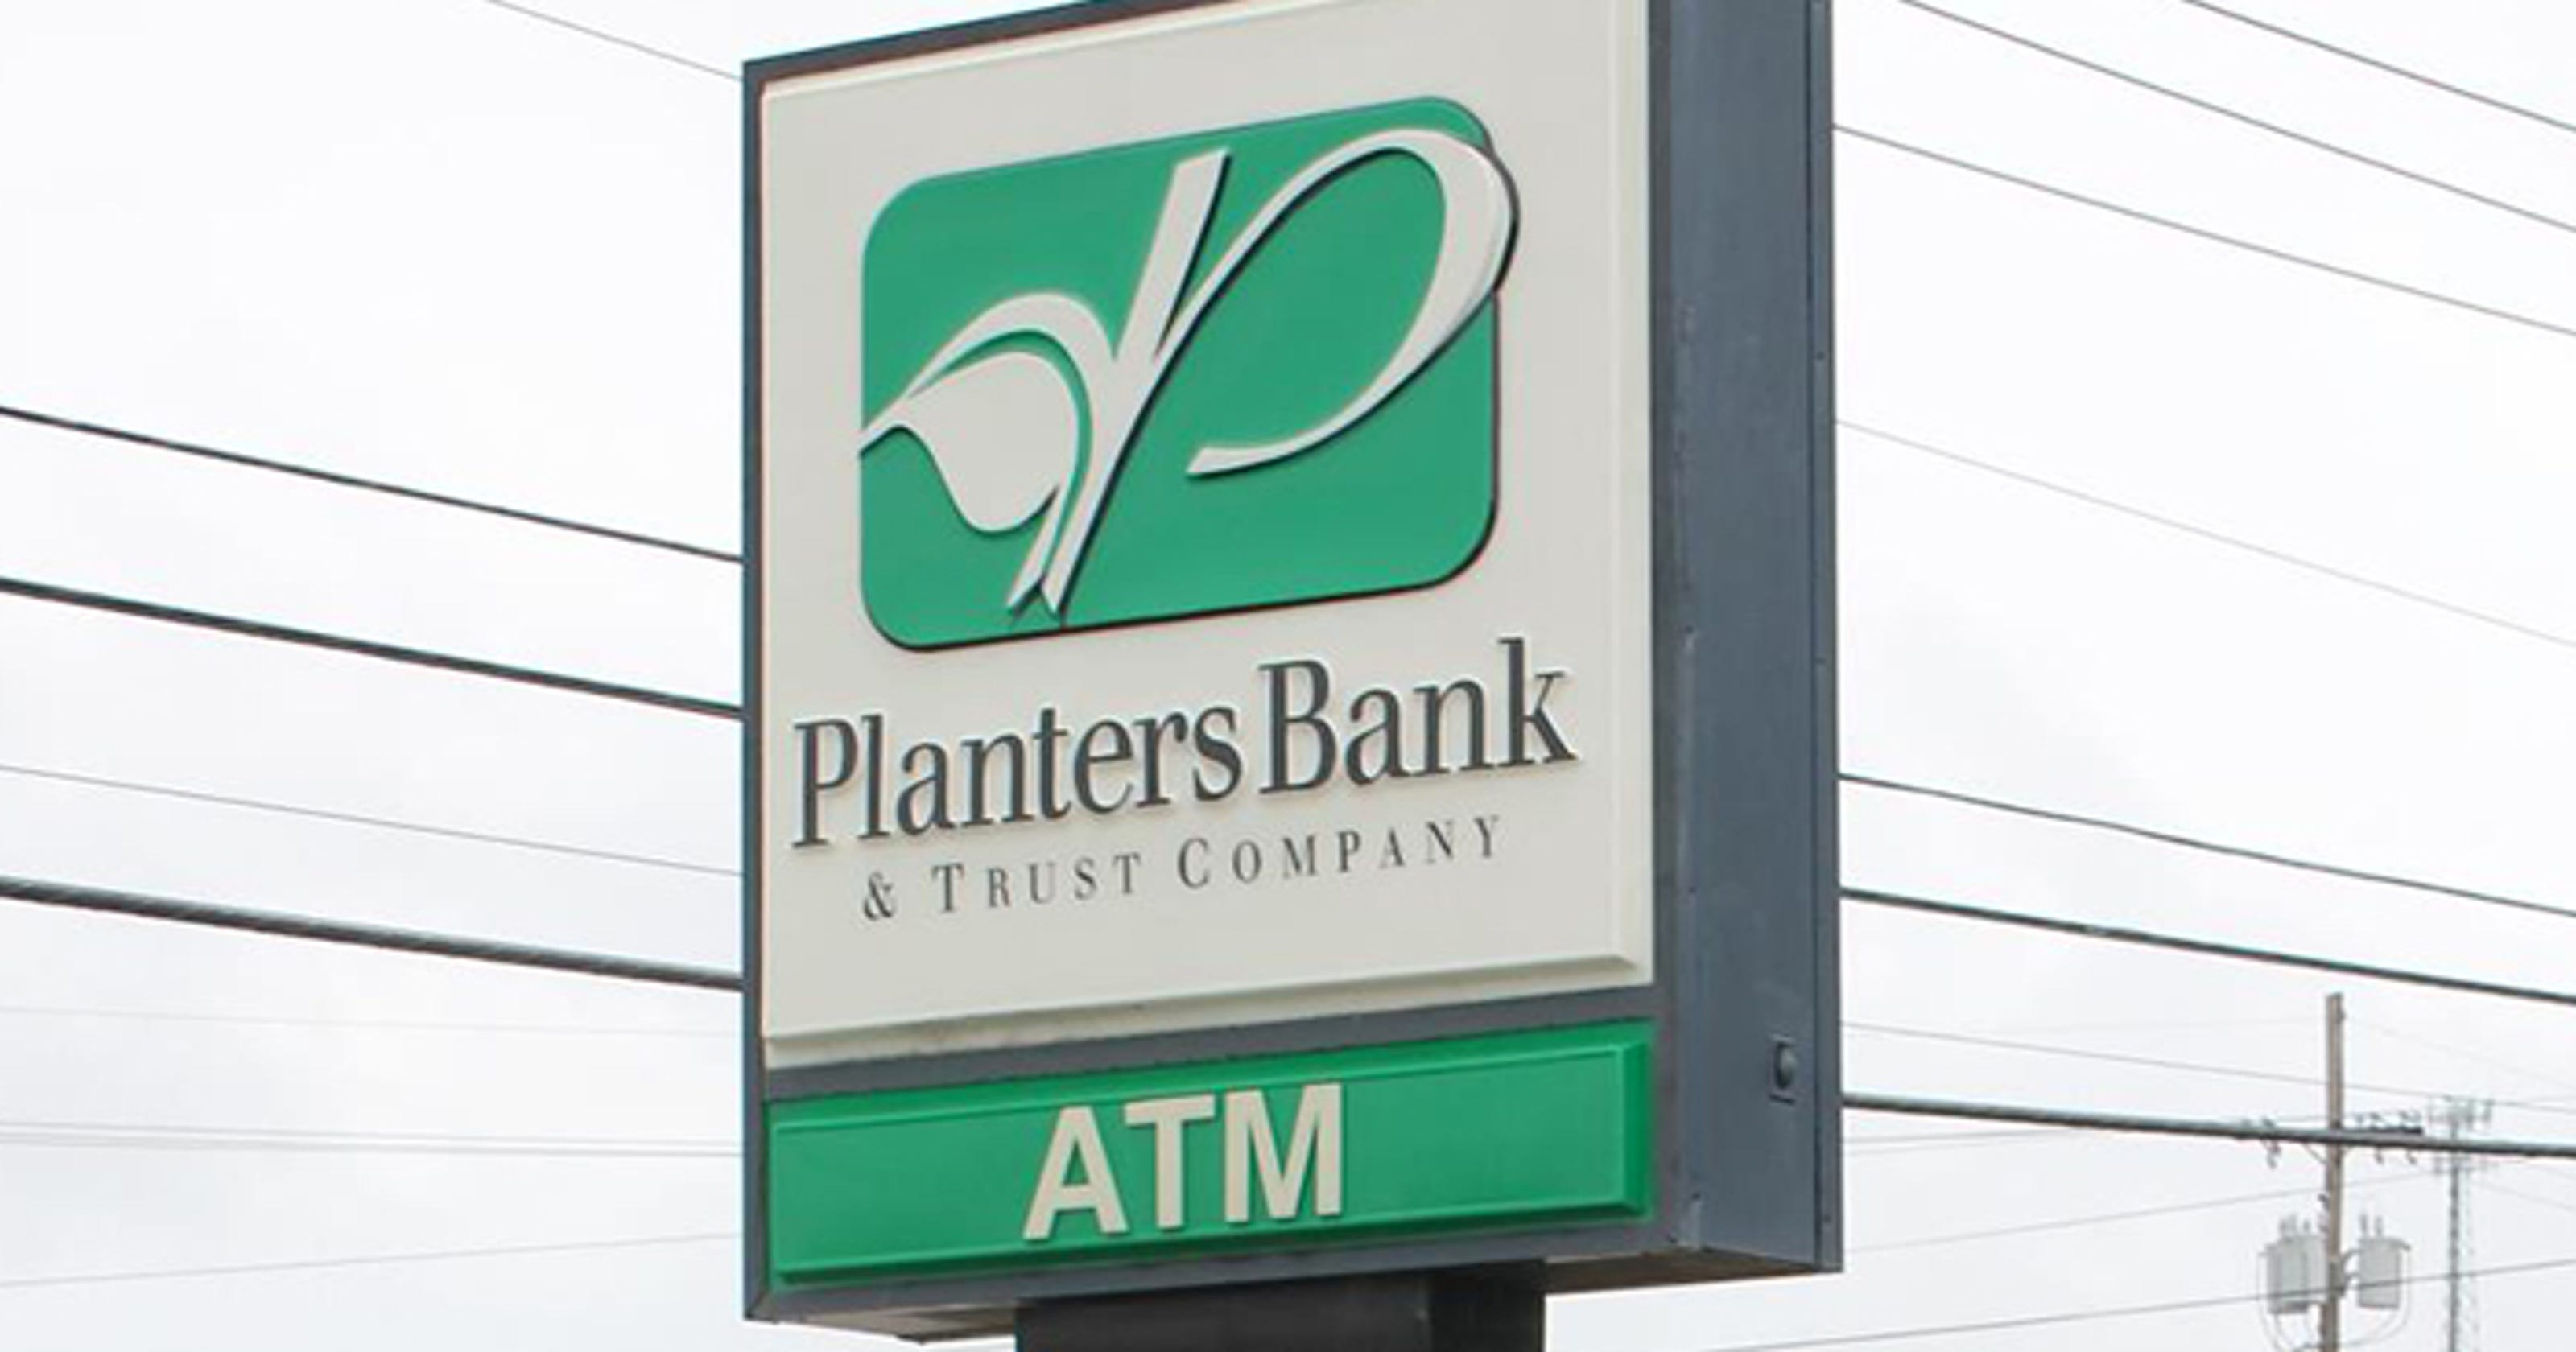 Covenant Bank Merging With Planters Bank